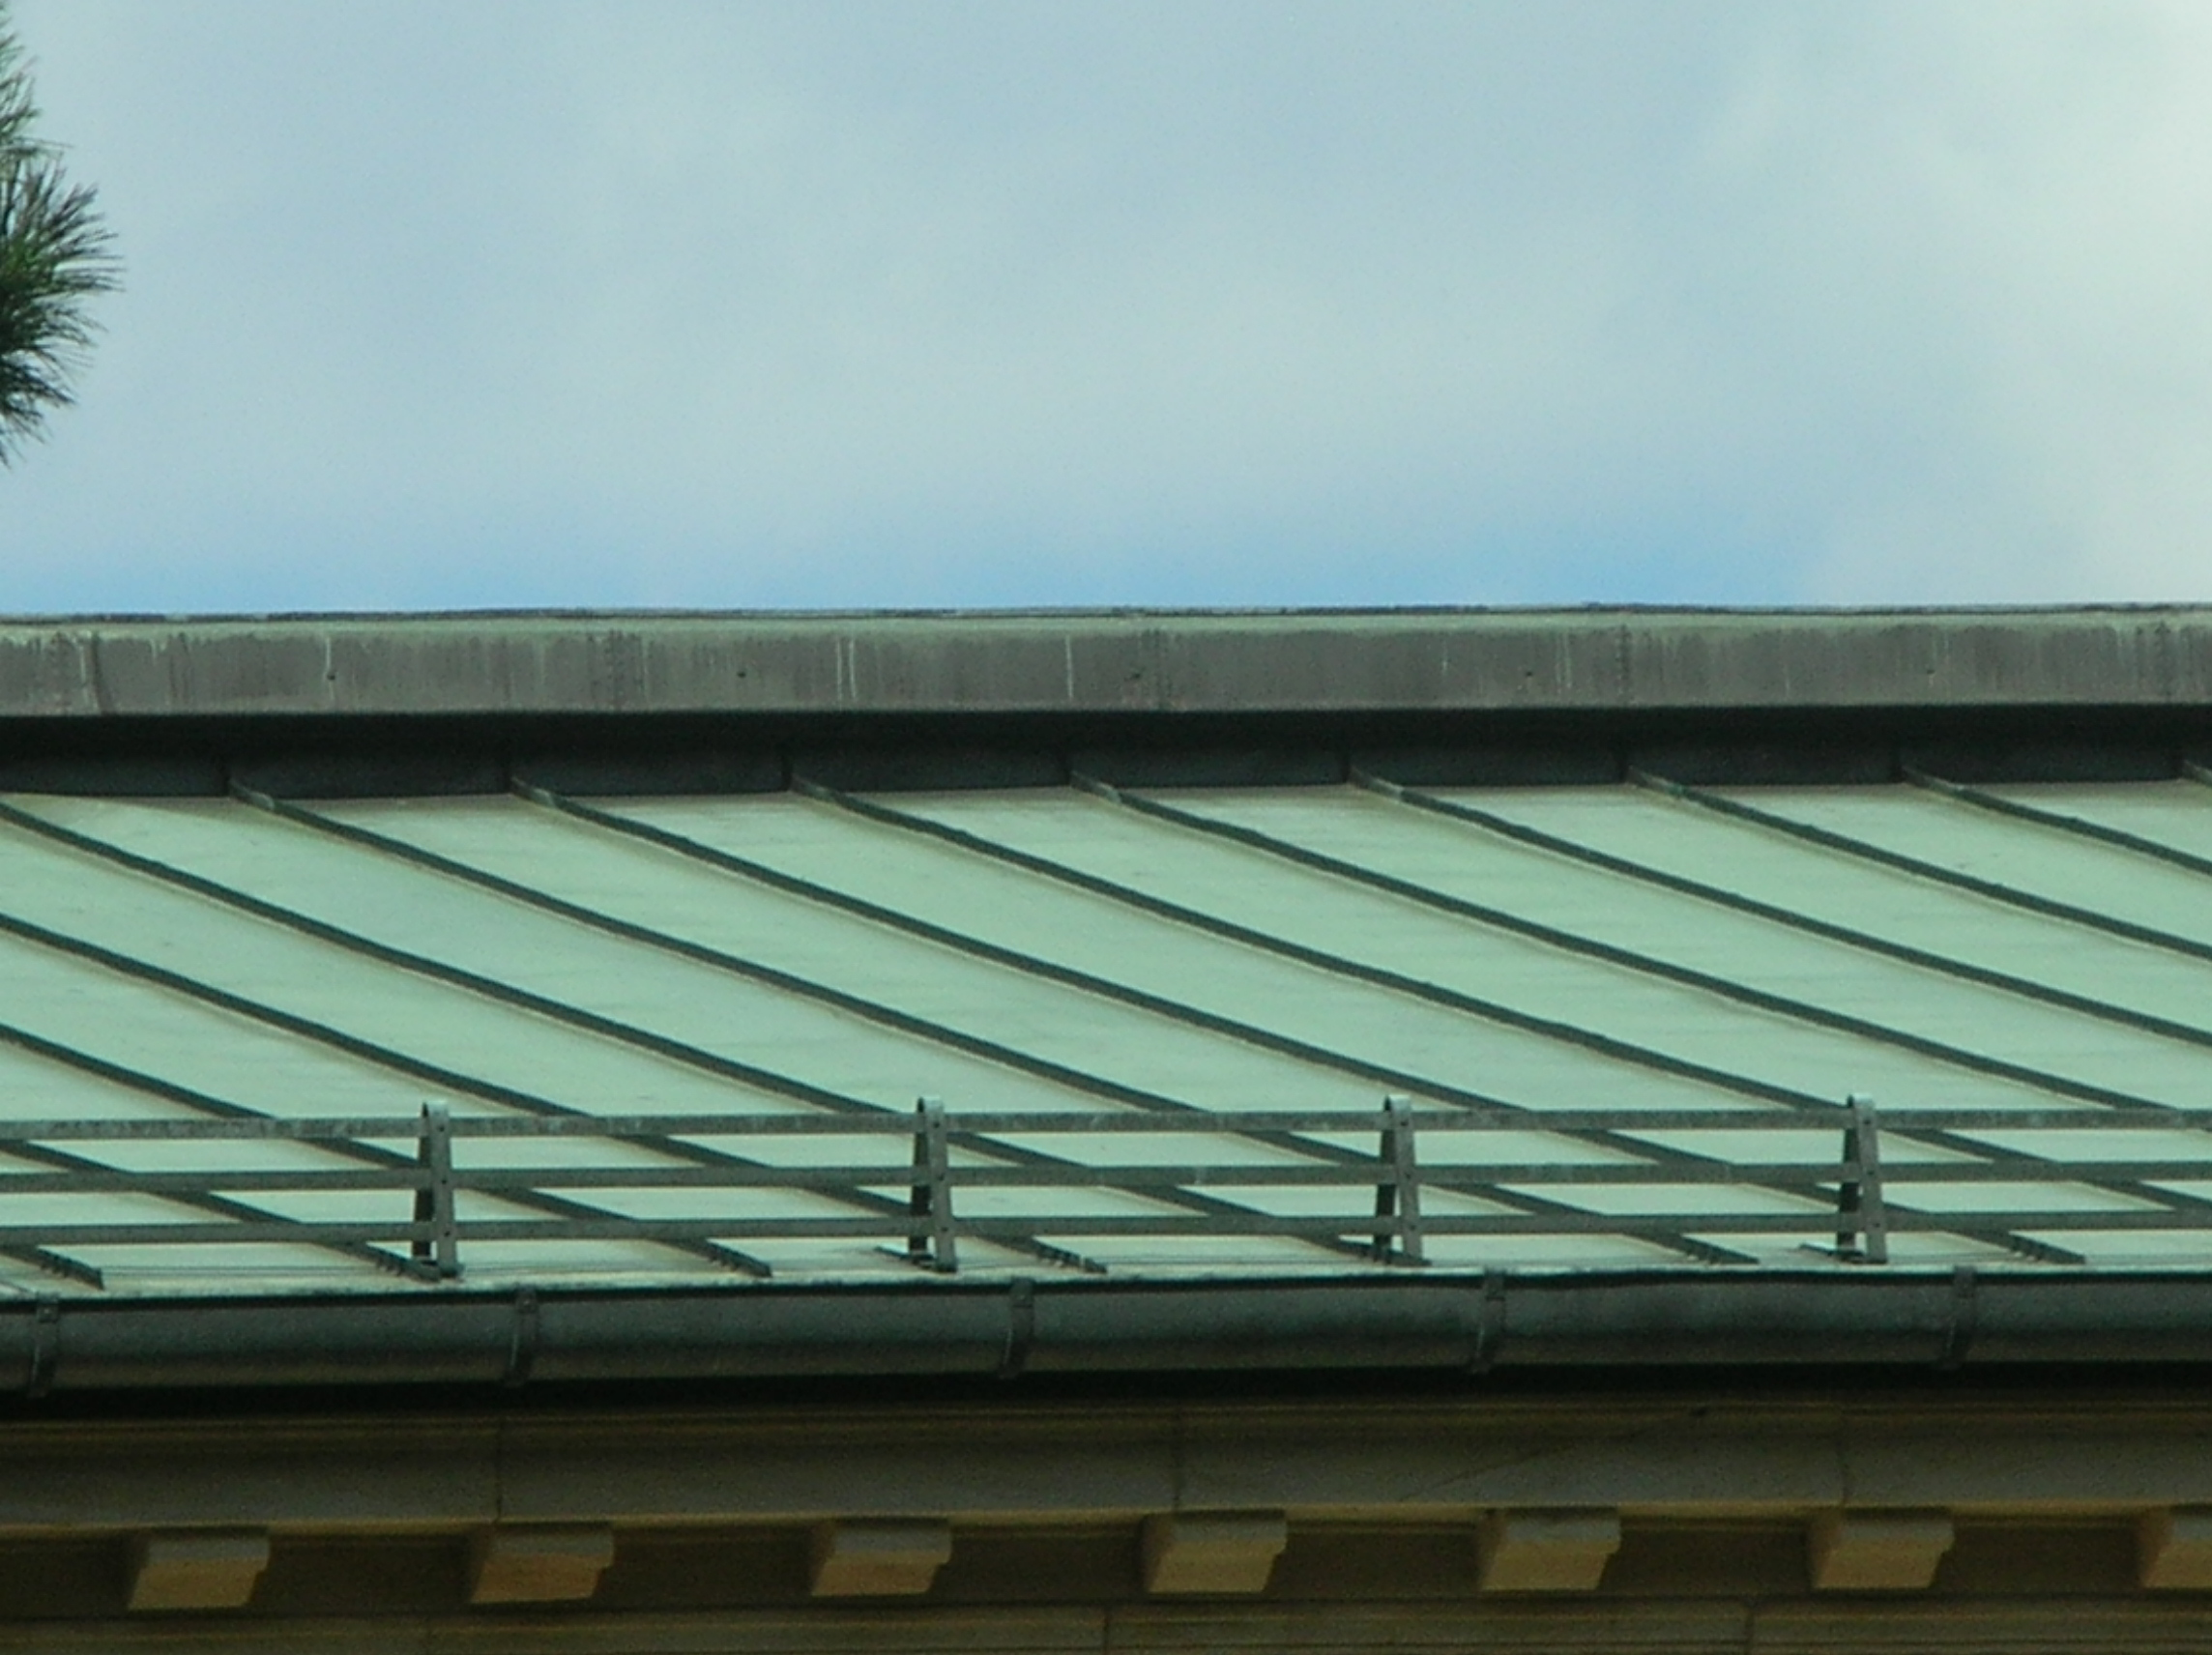 Section of a standing seam copper roof.